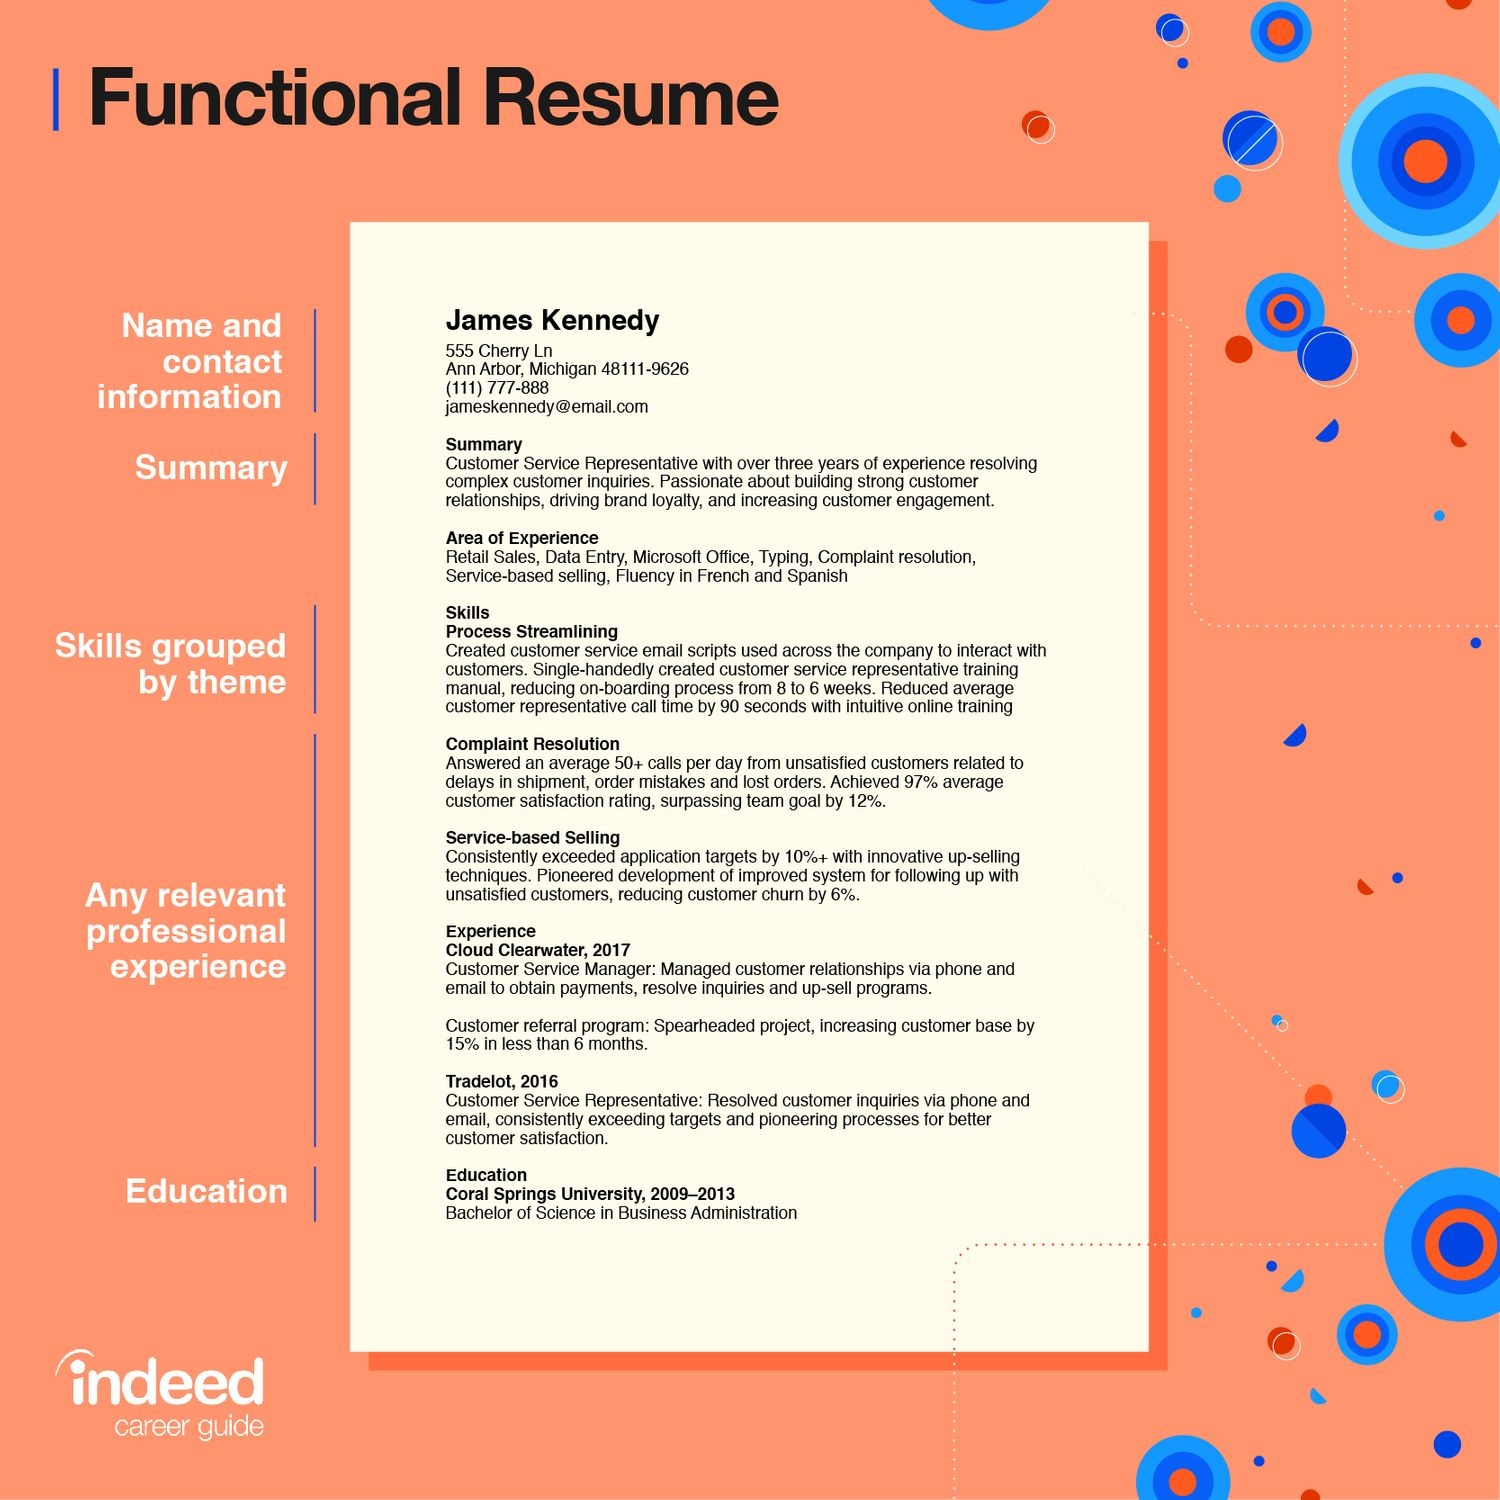 best skills to include on resume with examples indeed cancel subscription resized Resume Cancel Indeed Resume Subscription